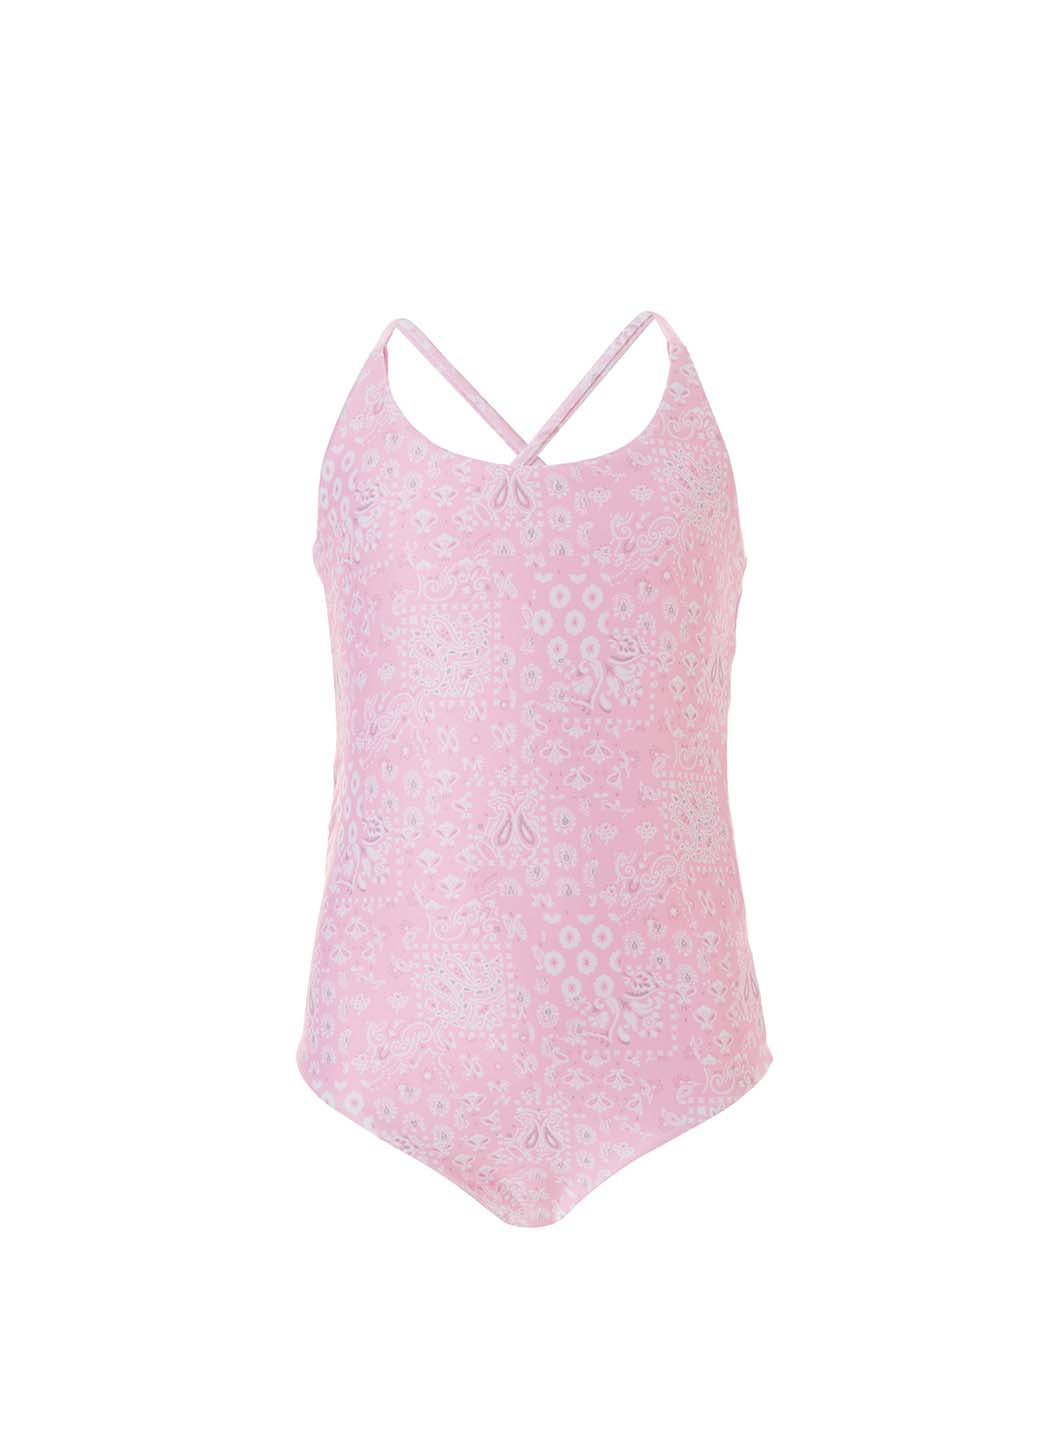 Baby Vicky Pink Paisley/Pink Reversible Swimsuit